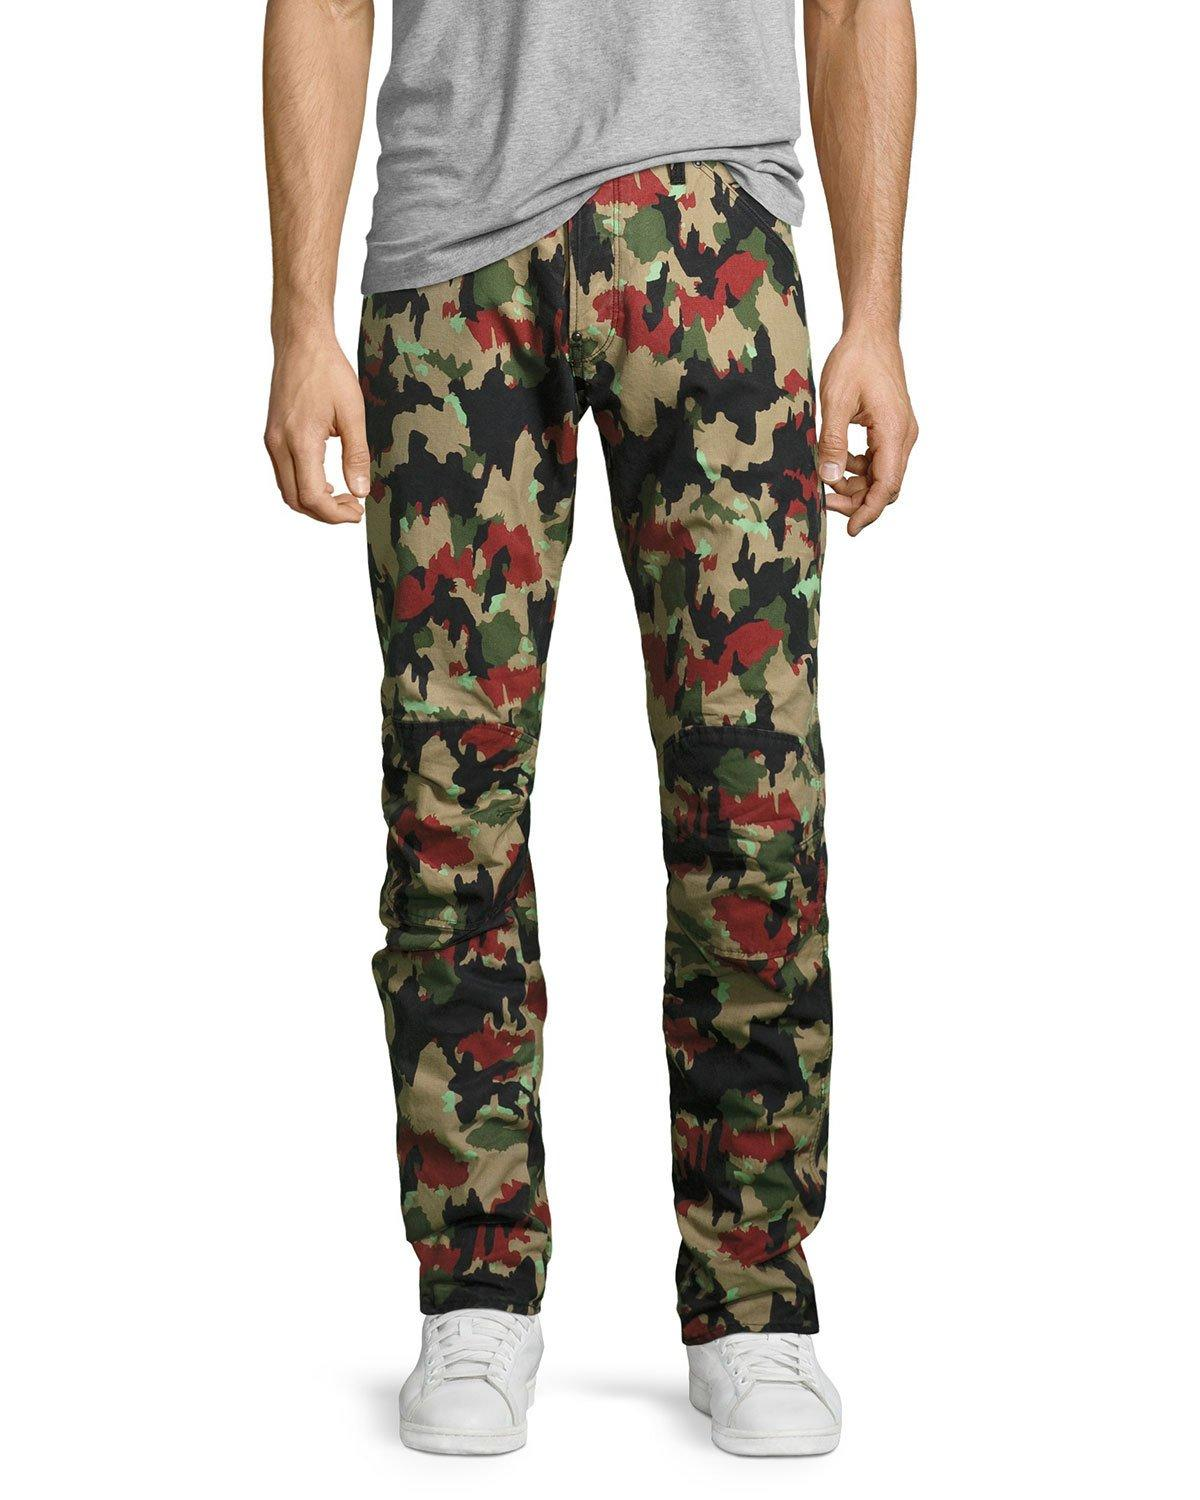 g star raw elwood x25 alpenflage camouflage 3d tapered jeans for men lyst. Black Bedroom Furniture Sets. Home Design Ideas